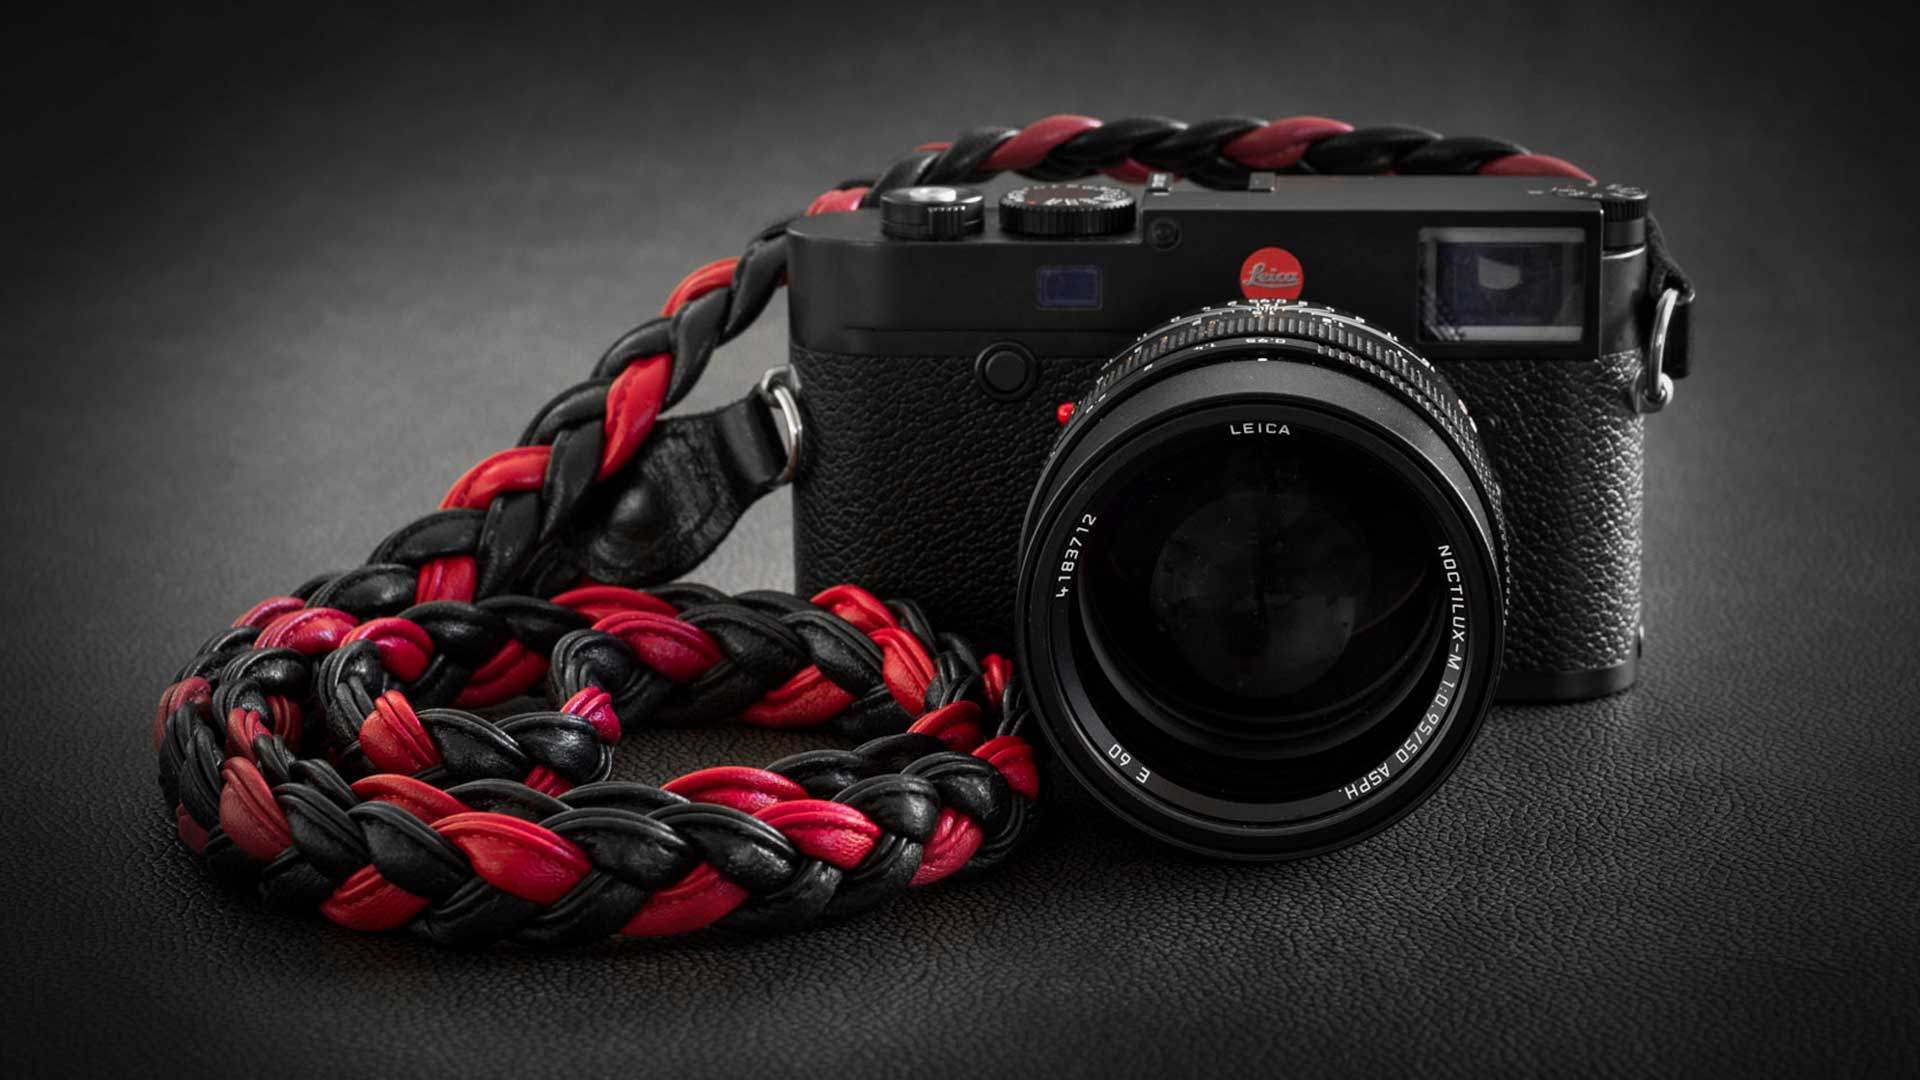 leica m strap, leather camera strap, handmade leather camera strap, leica camera strap, mirrorless camera strap, handmade camera strap, black camera strap, red camera strap, braided camera strap